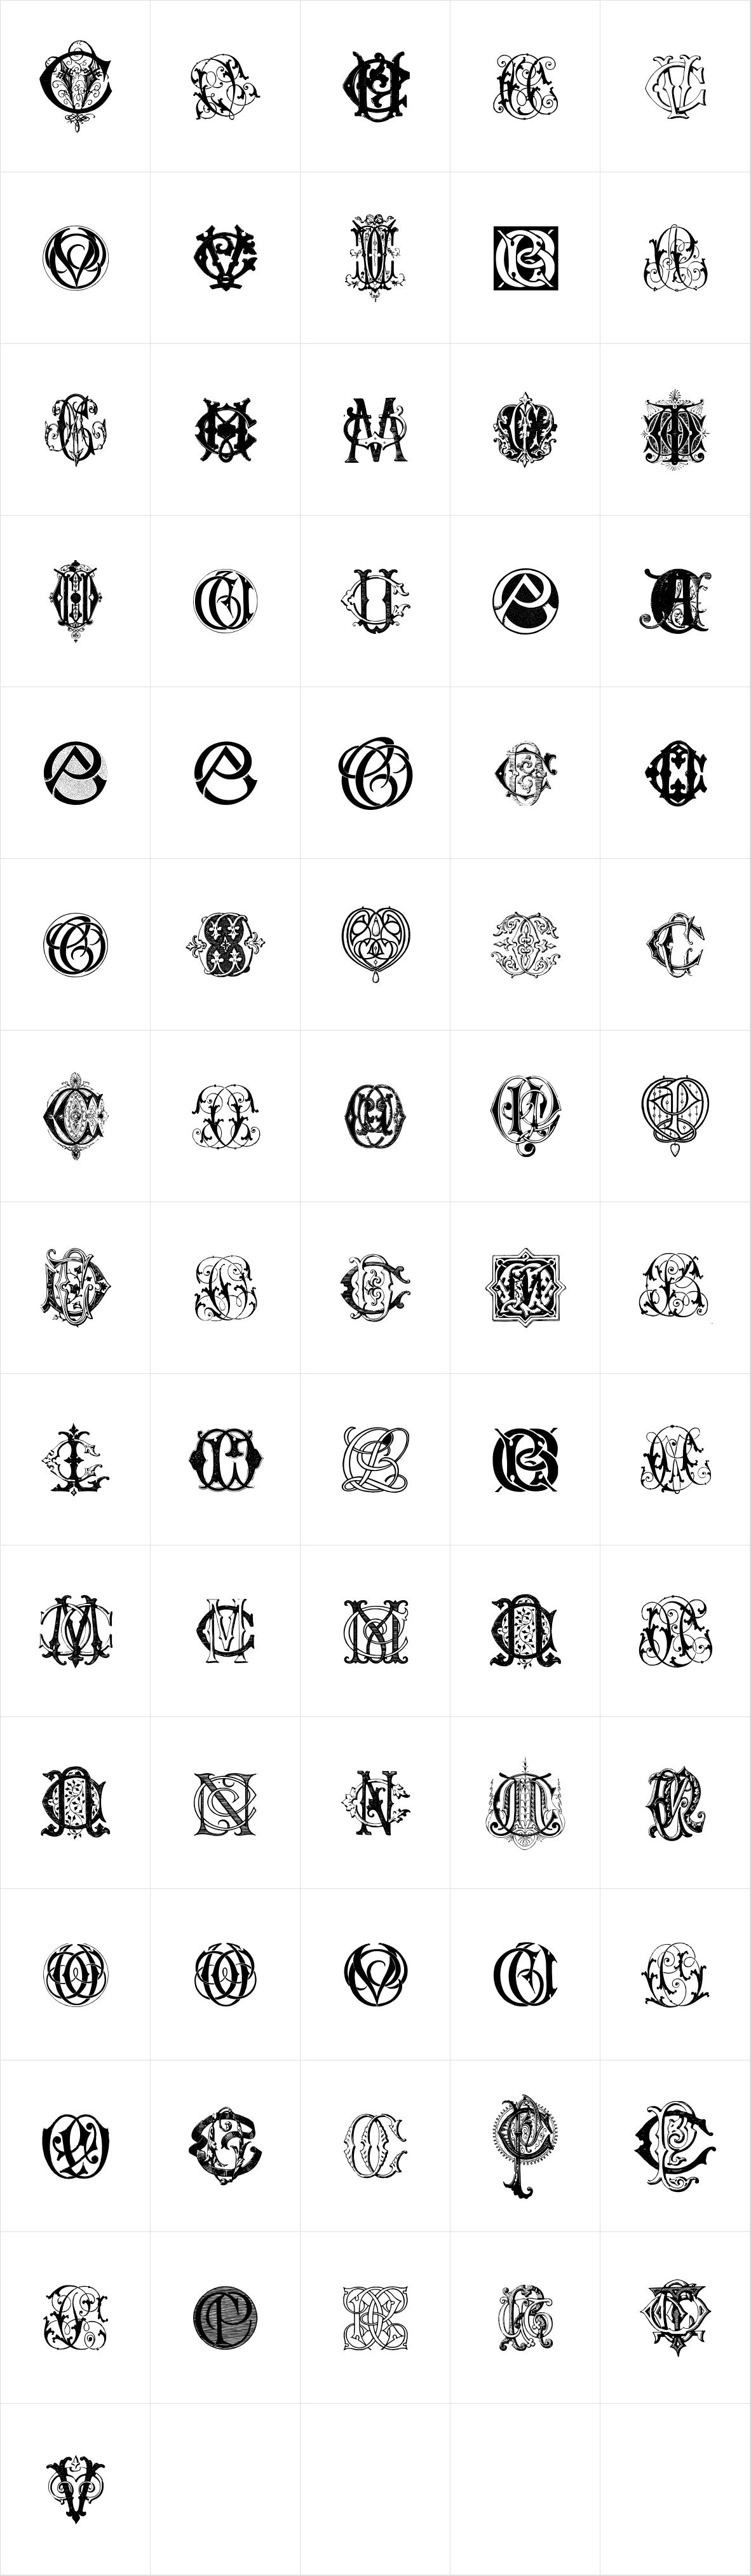 Intellecta Monograms CACV New Series